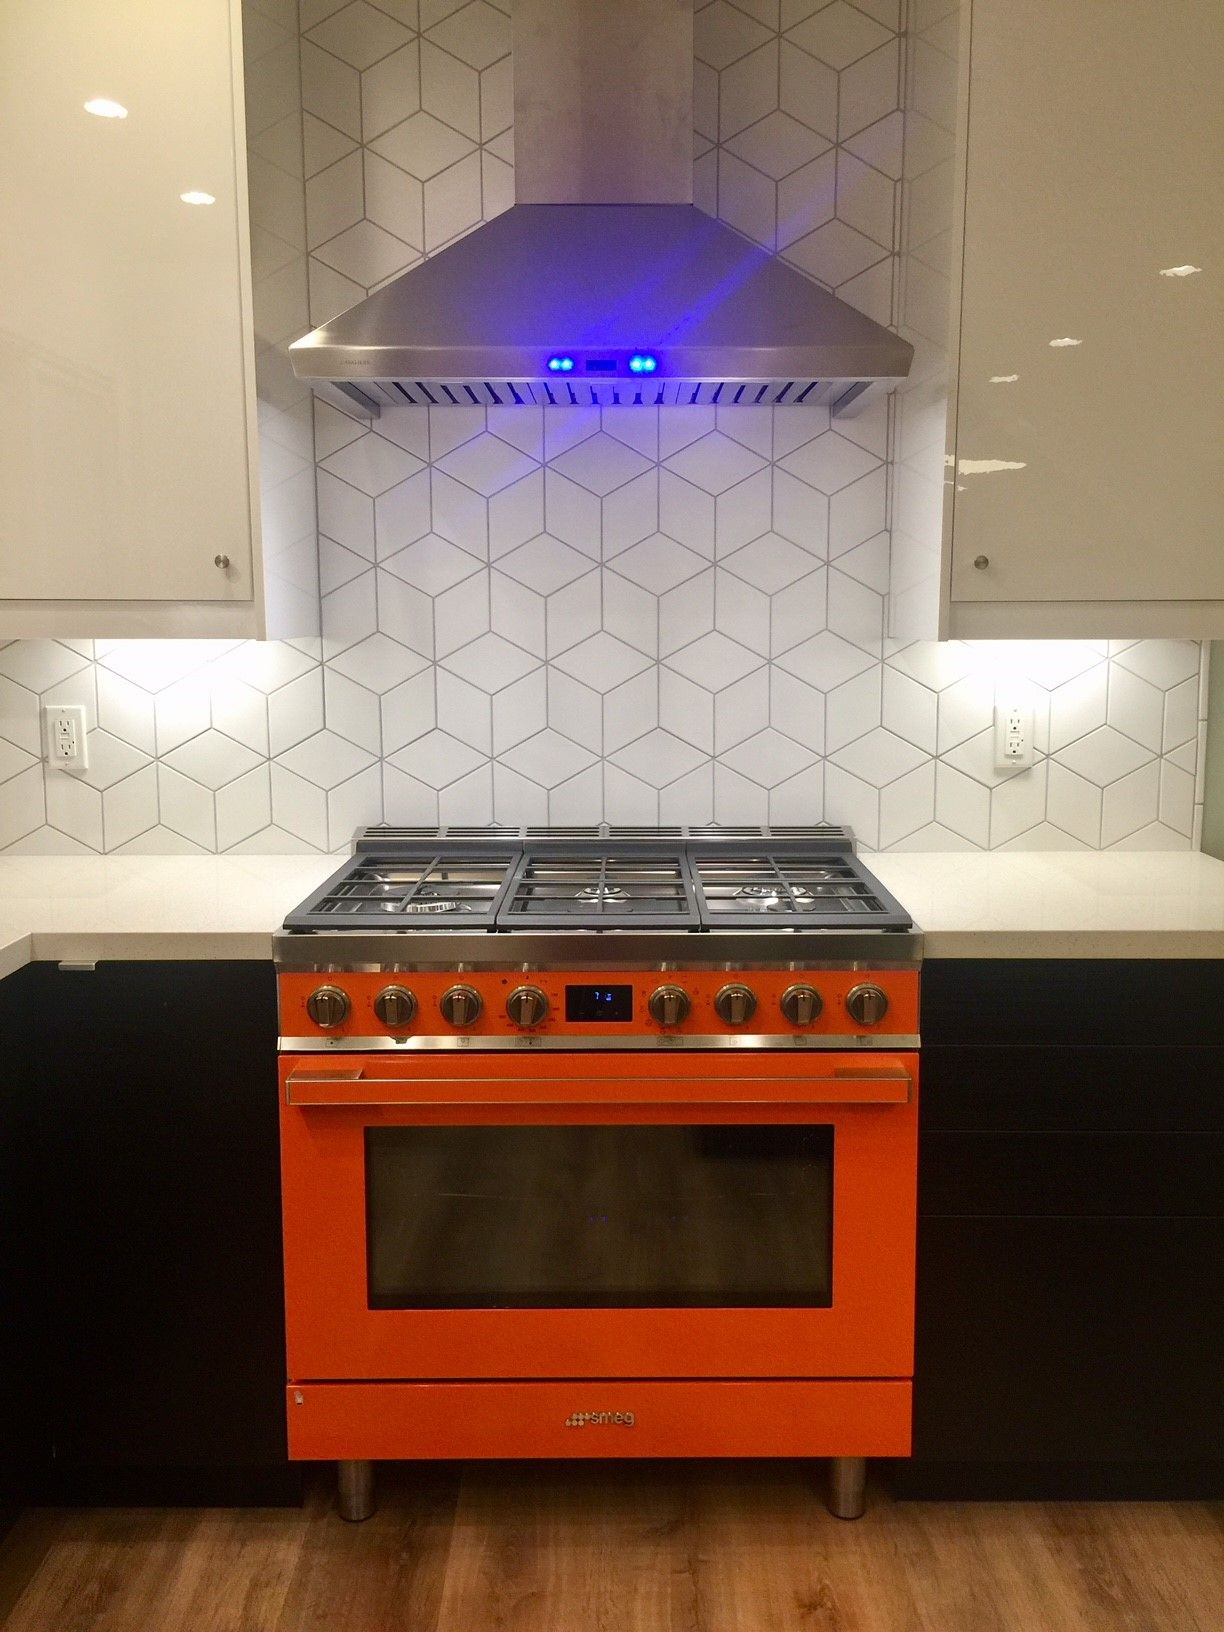 smeg portofino in orange costa allegra ceramic rhombus matte white rh pinterest com